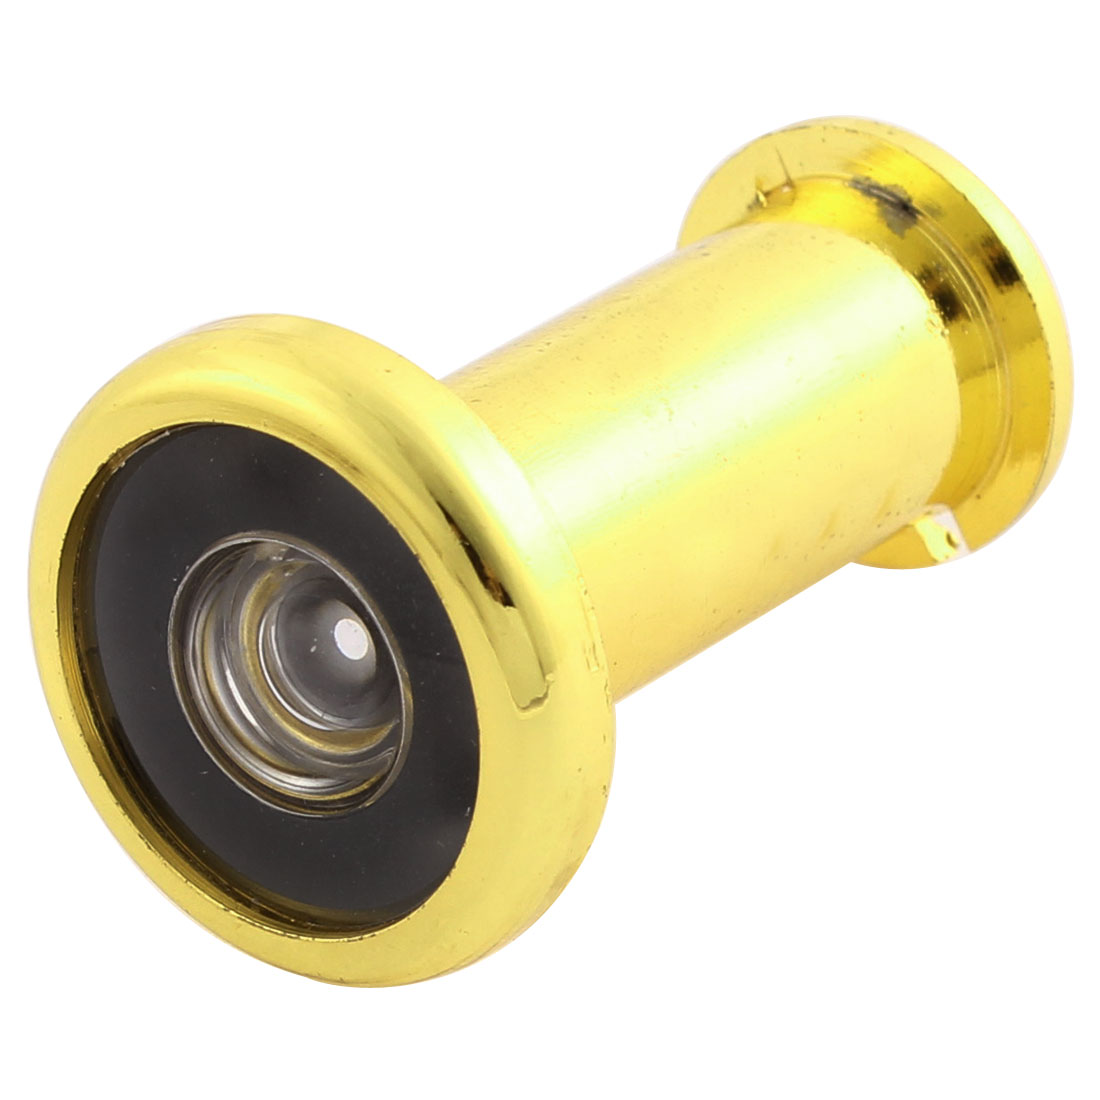 Gold Tone 180 Degree Peephole Wide Angle Lens Door Viewer